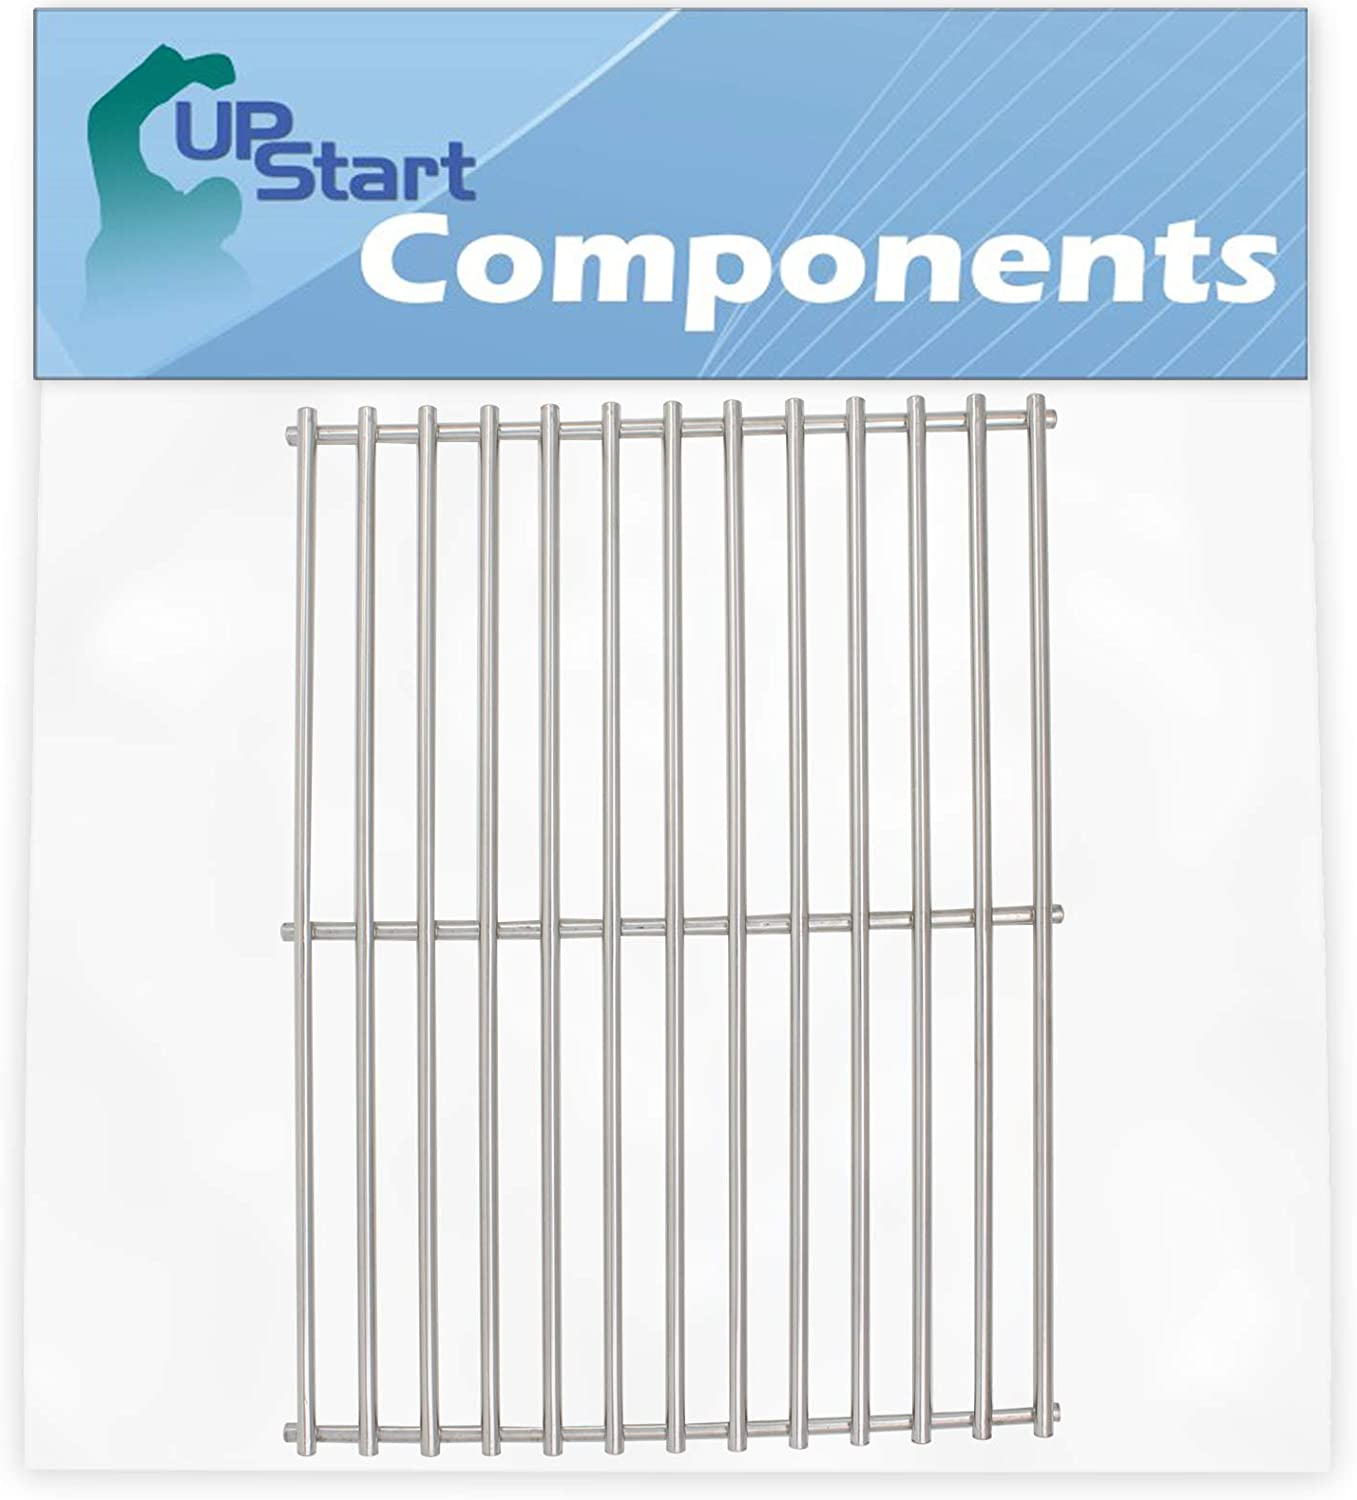 UpStart Components BBQ Grill Cooking New Orleans Mall fo Grates Replacement Parts Large discharge sale